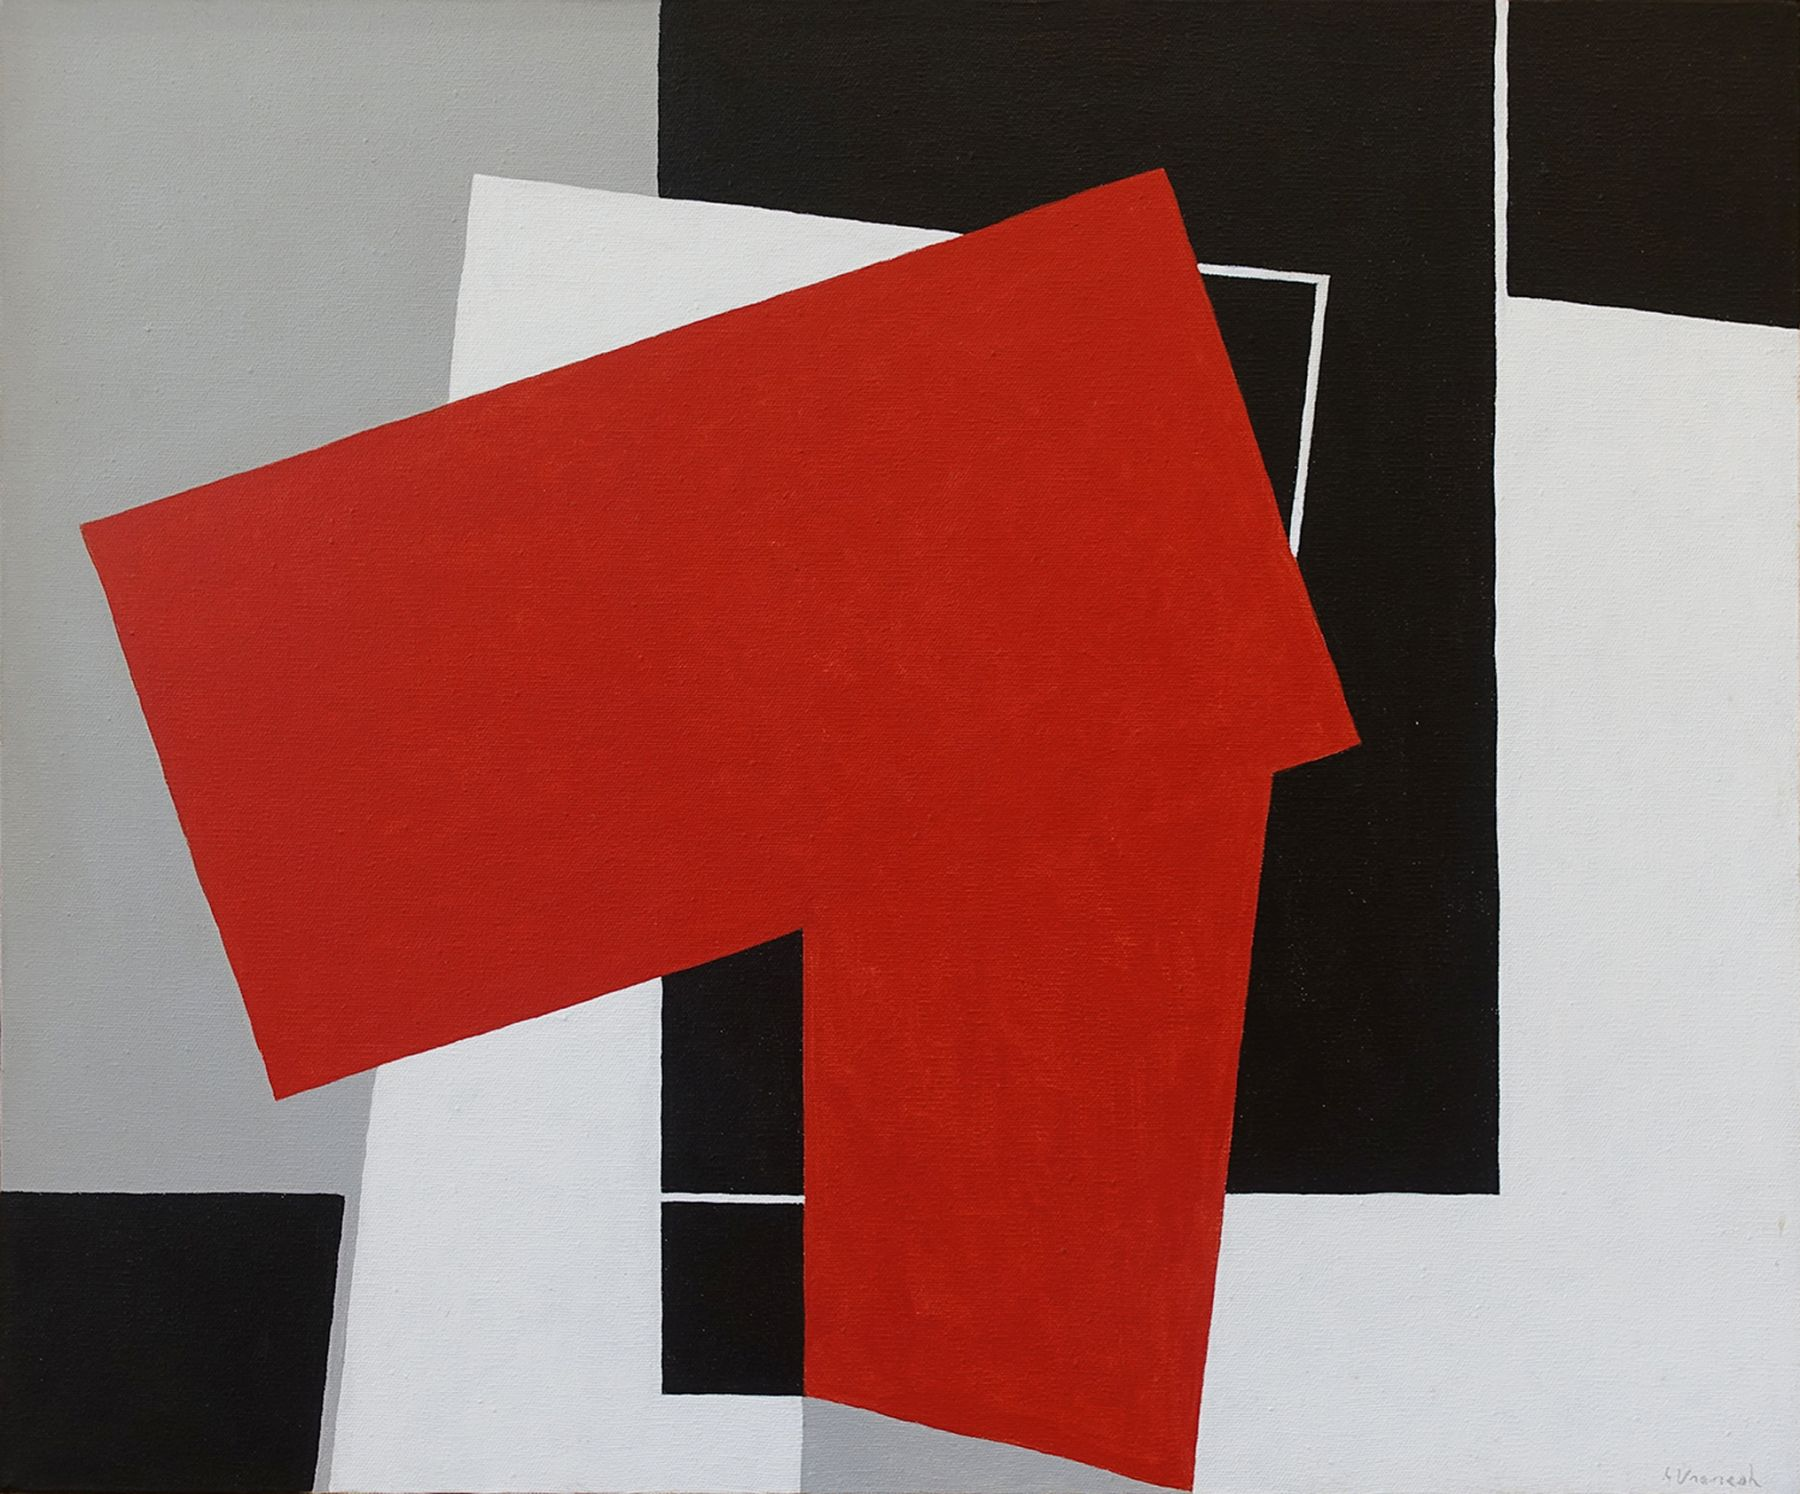 George Vranesh (1926-2014) Color Red, 1990